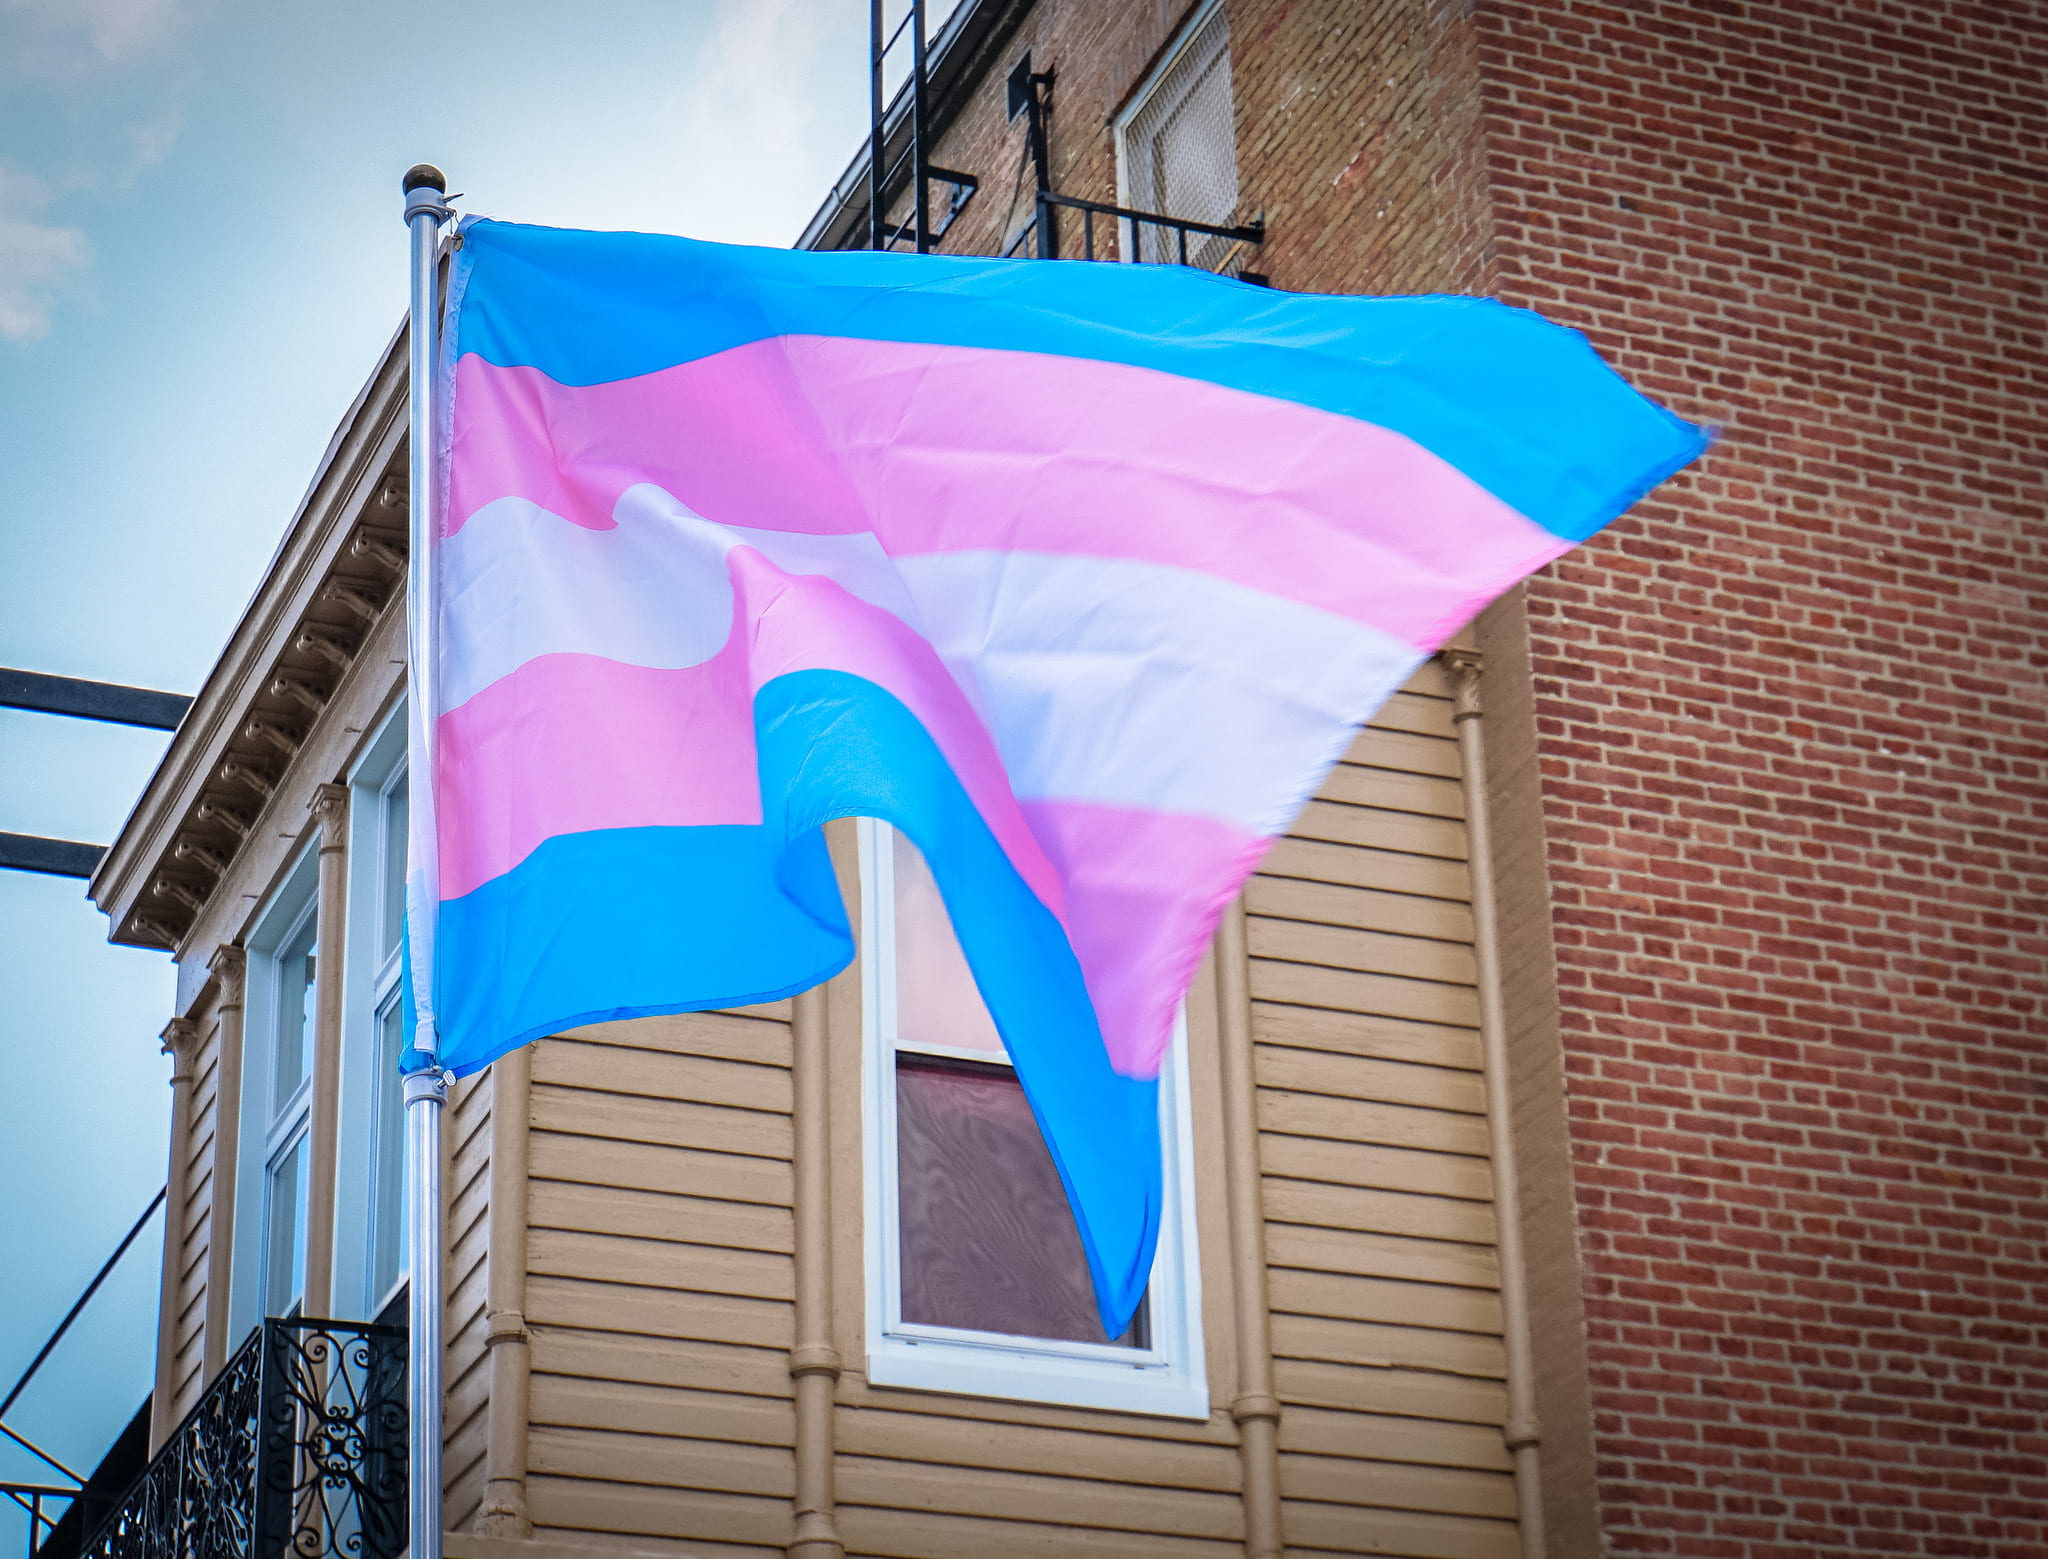 No More No Less: Basic Human Rights are Transgender Rights